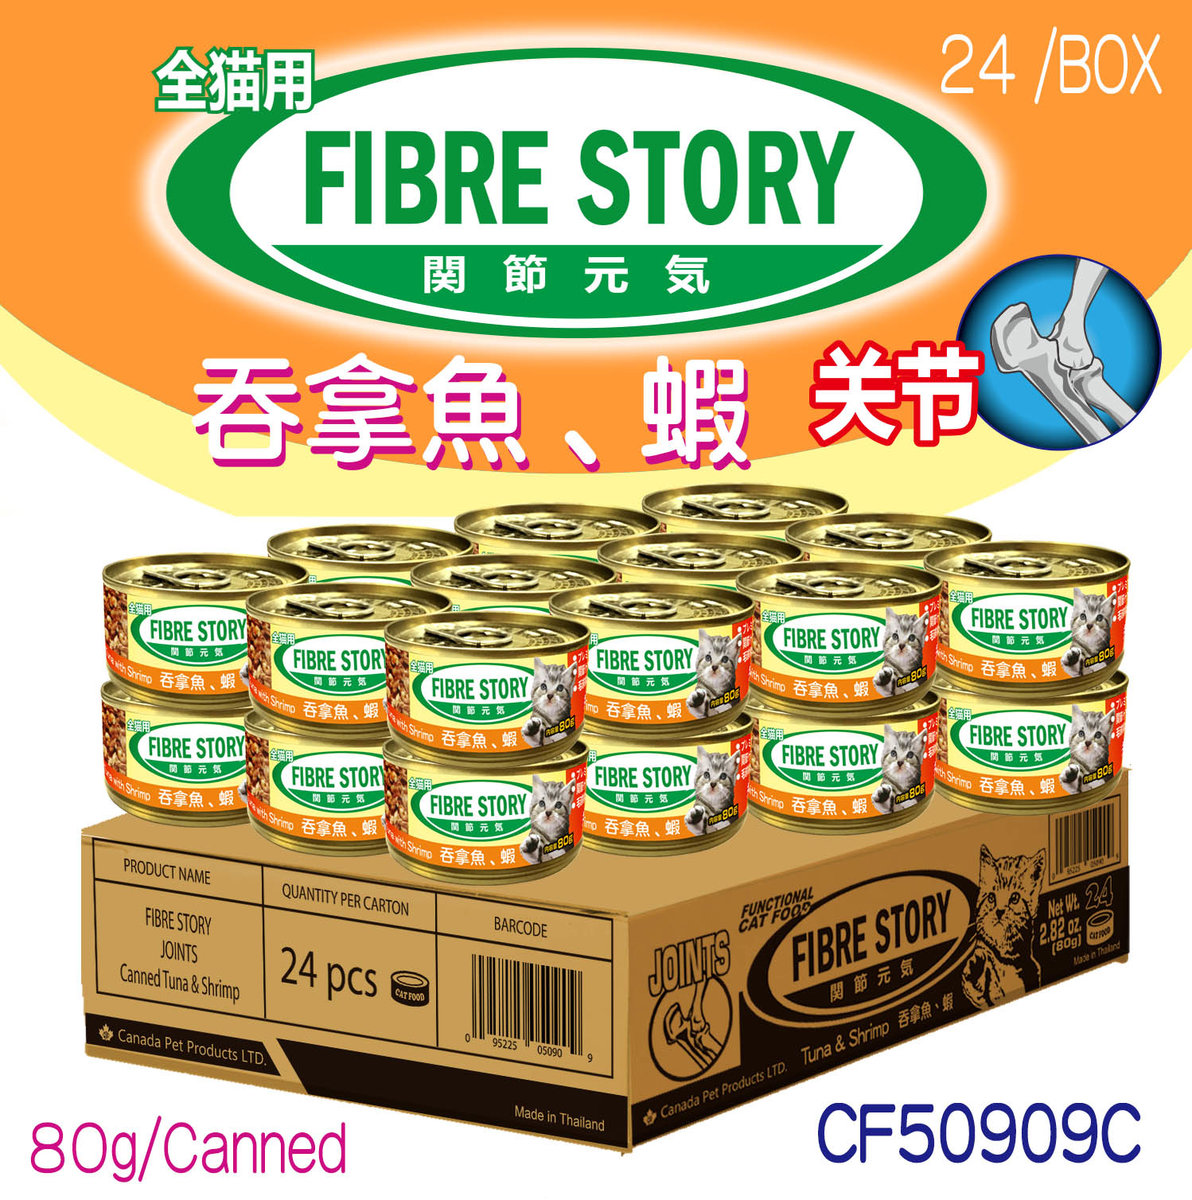 Fibre Story - (Joints) - Cat canned food - Tuna and Shrimp flavor 24 X 80g/canned